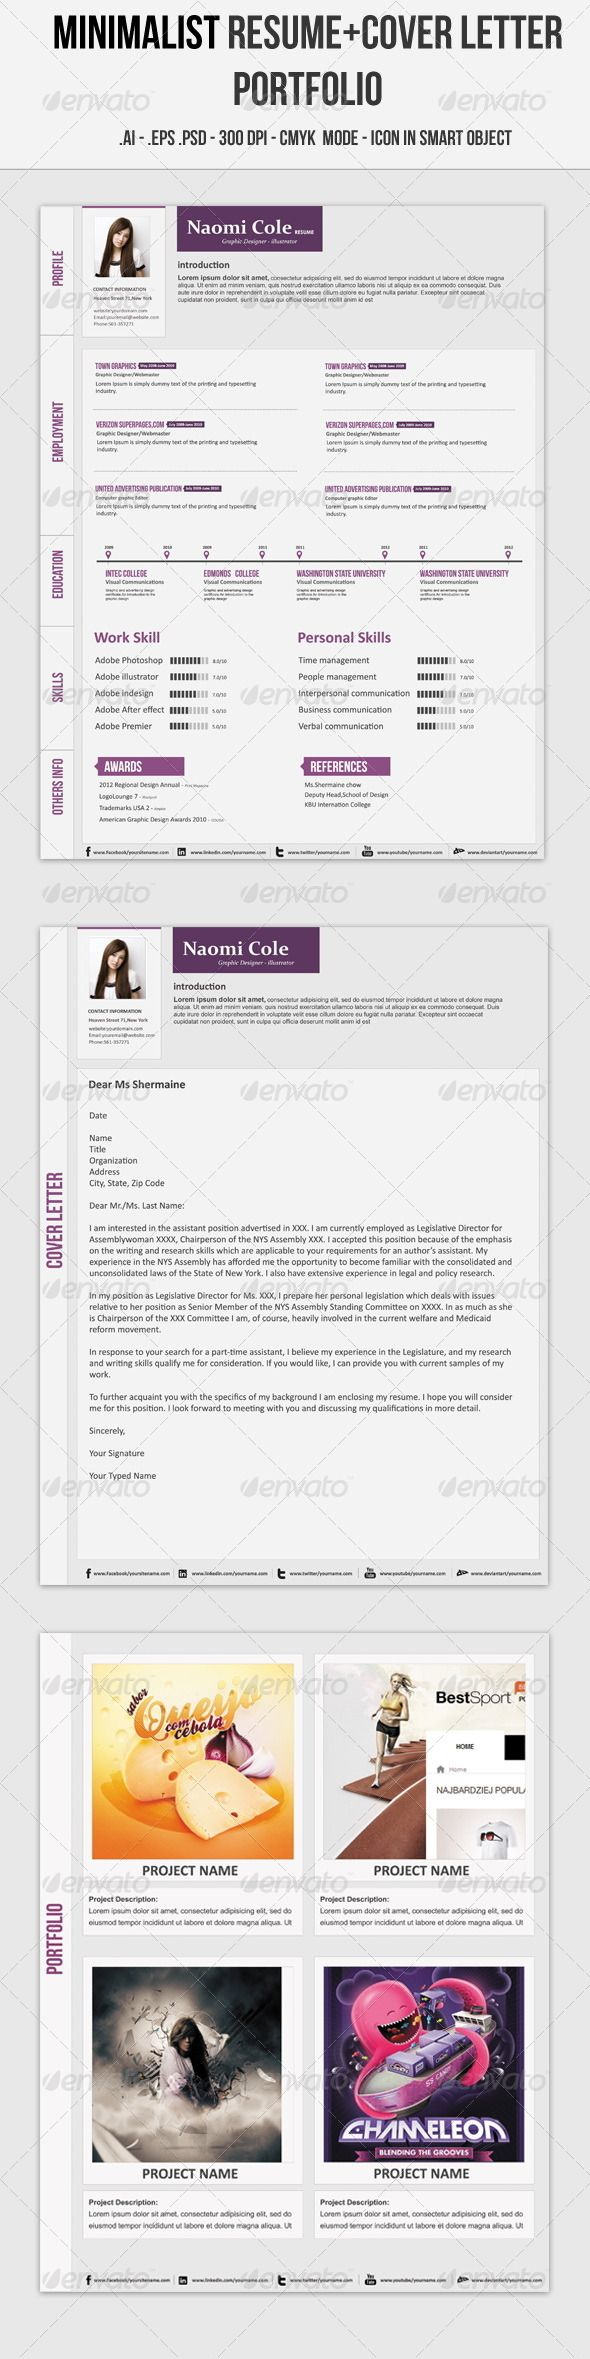 141 Best Resume Templates Images On Pinterest